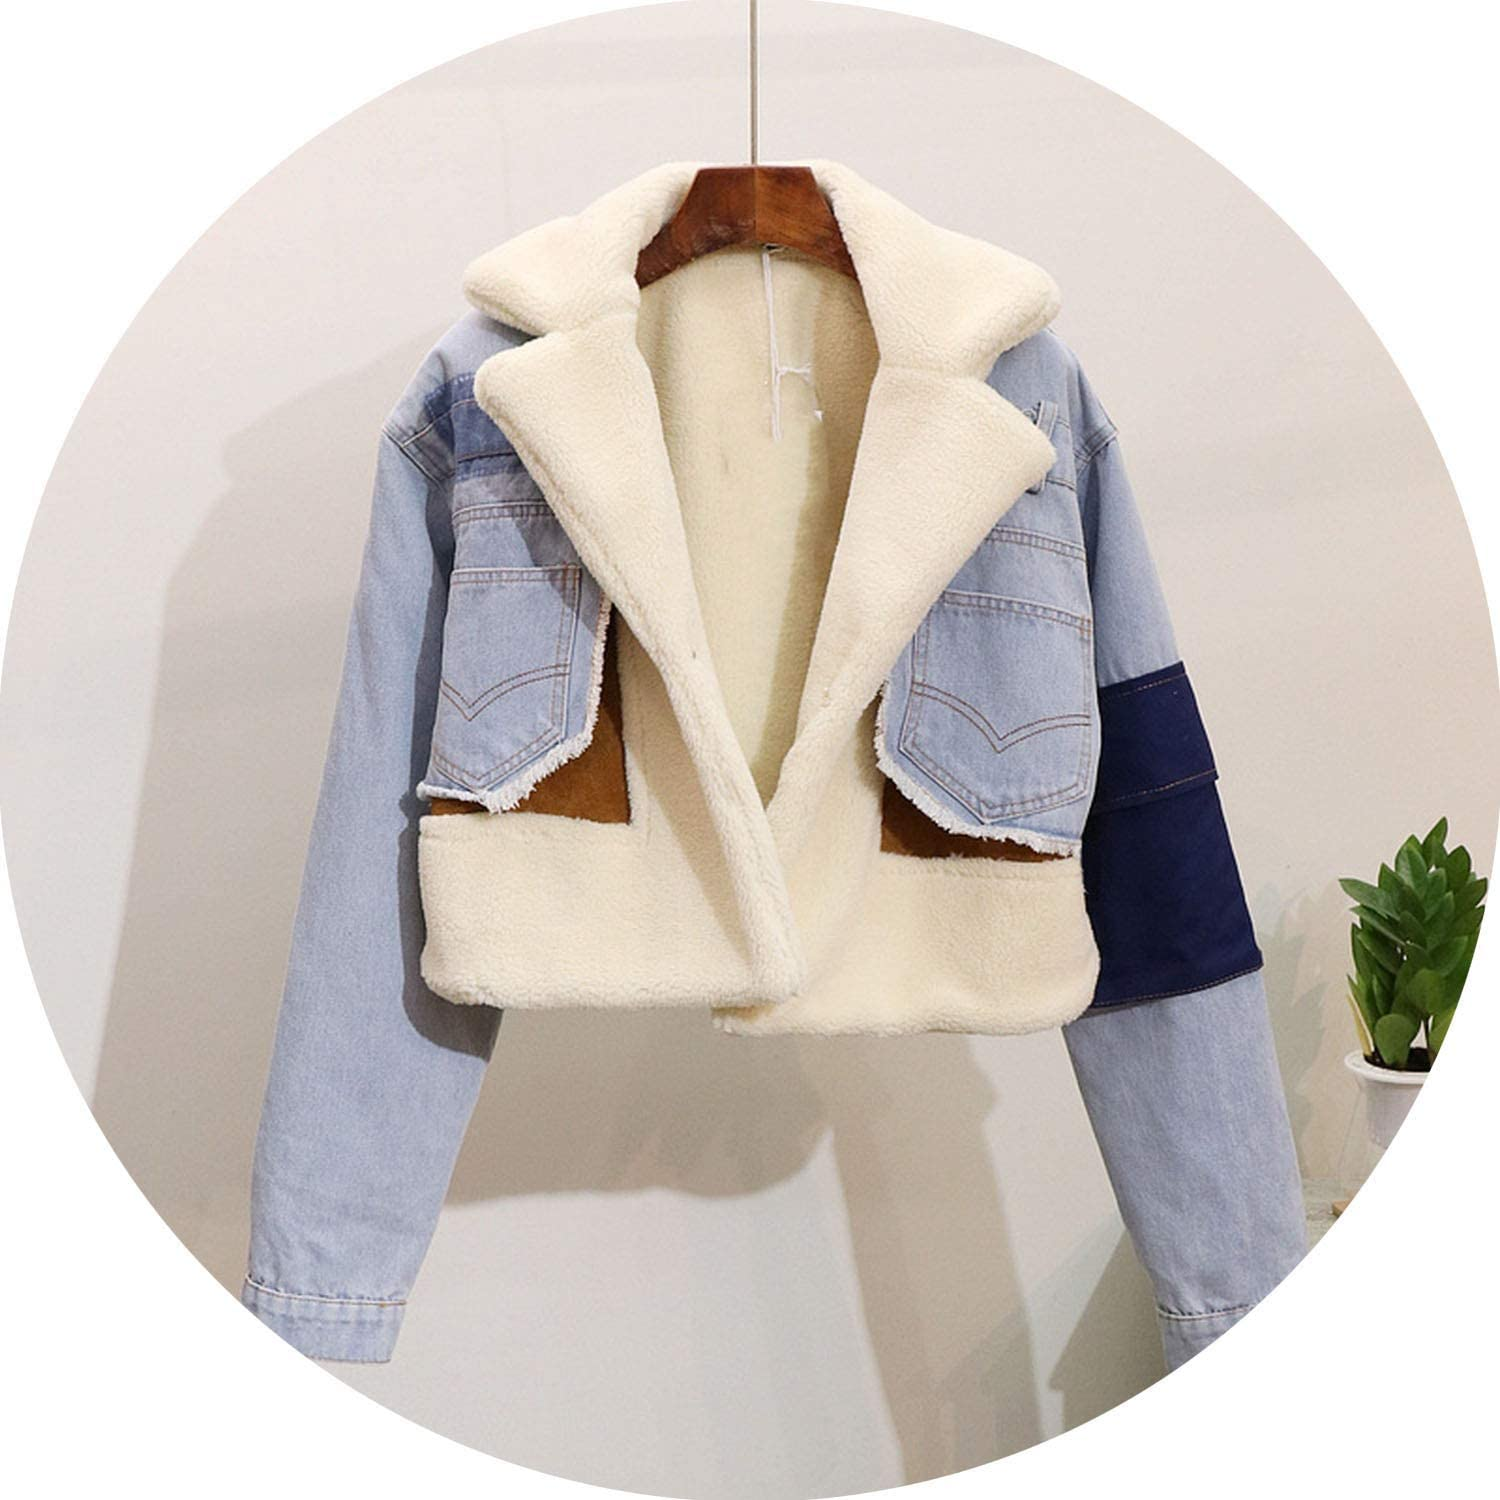 Winter Warm Thick Denim Jacket Coat Women Casual Patchwork Denim Jackets Outwear